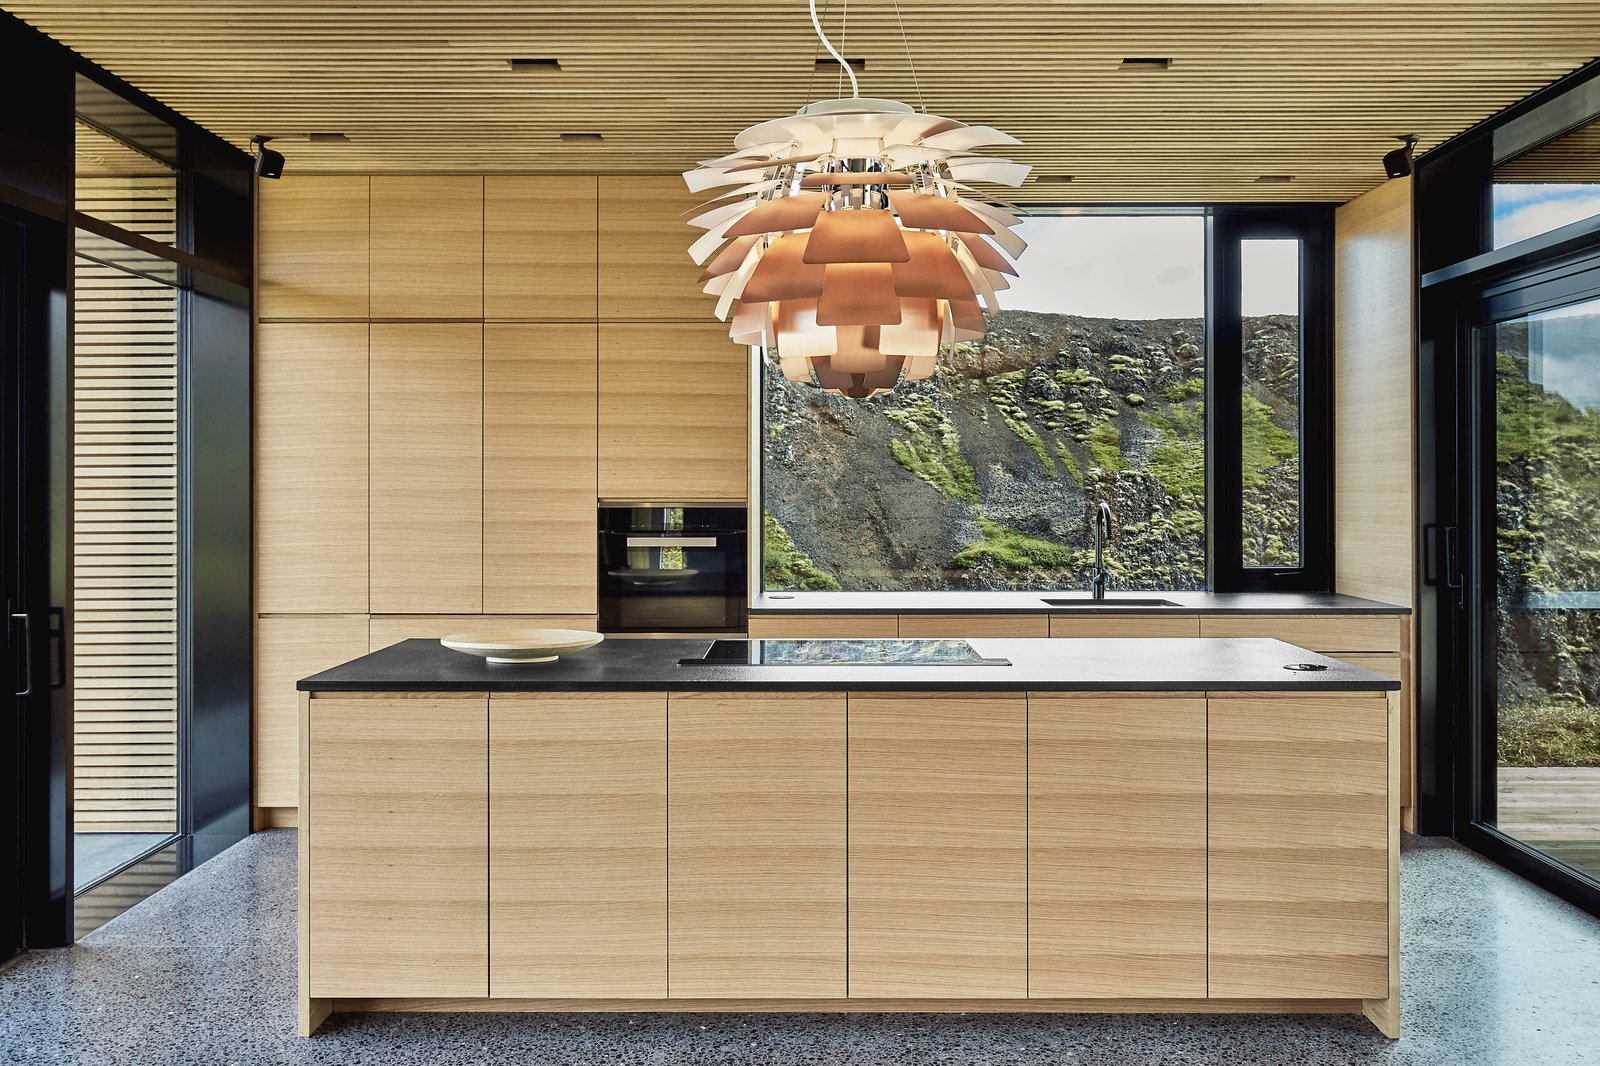 Kitchen, Wall Oven, Wood Cabinet, Cooktops, Concrete Floor, Pendant Lighting, Recessed Lighting, and Drop In Sink The open kitchen blends in with sleek, wood cabinetry and black countertops.  Photos from A Timber-and-Concrete Summer House in Iceland Boasts Breathtaking Views